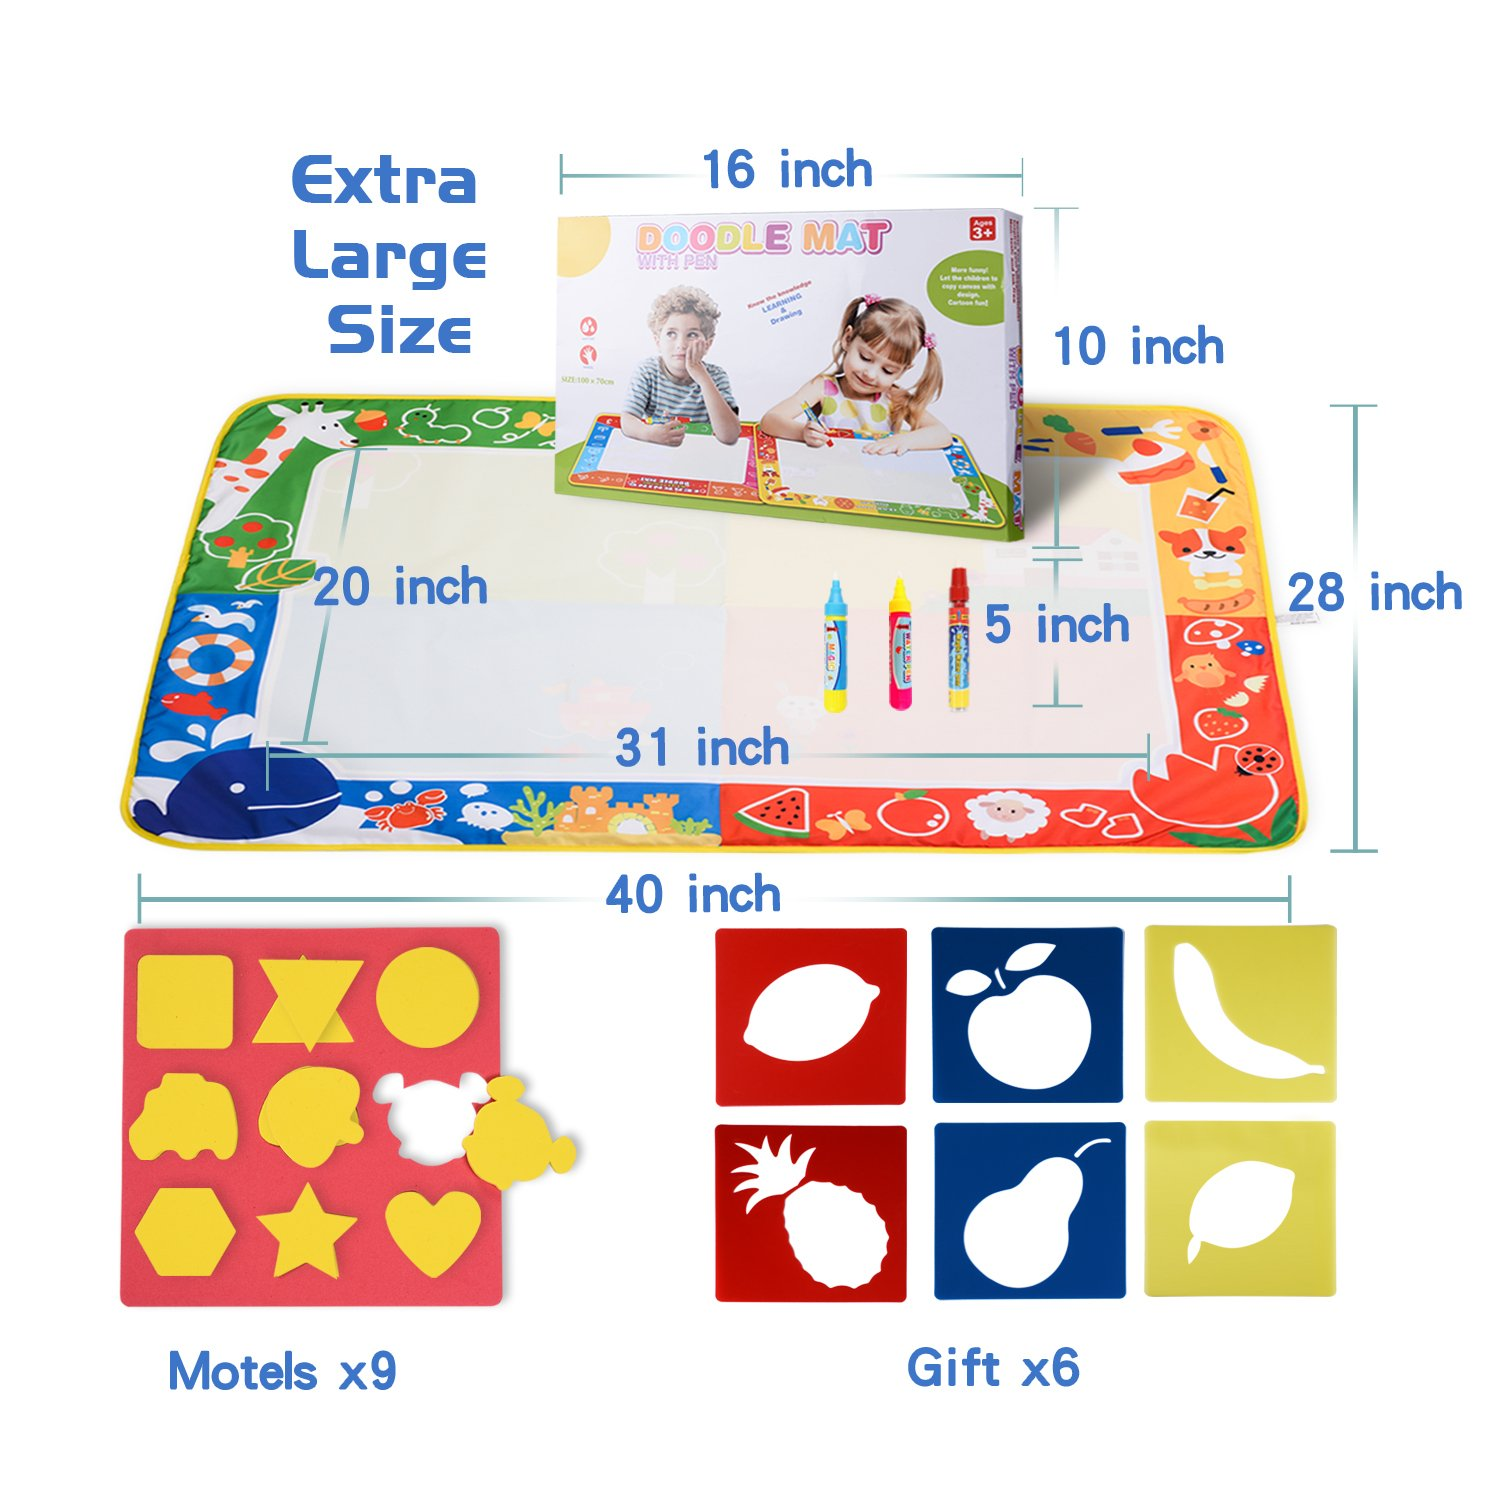 citymama Drawing Mat Doodle Magic mat water Drawing & writing Mat painting board 4 Colors with 3 Magic Drawing Pens and 15 Molds Kids Educational Toy Mat Gift for Children XL Size 40'' x 28'' by citymama (Image #6)